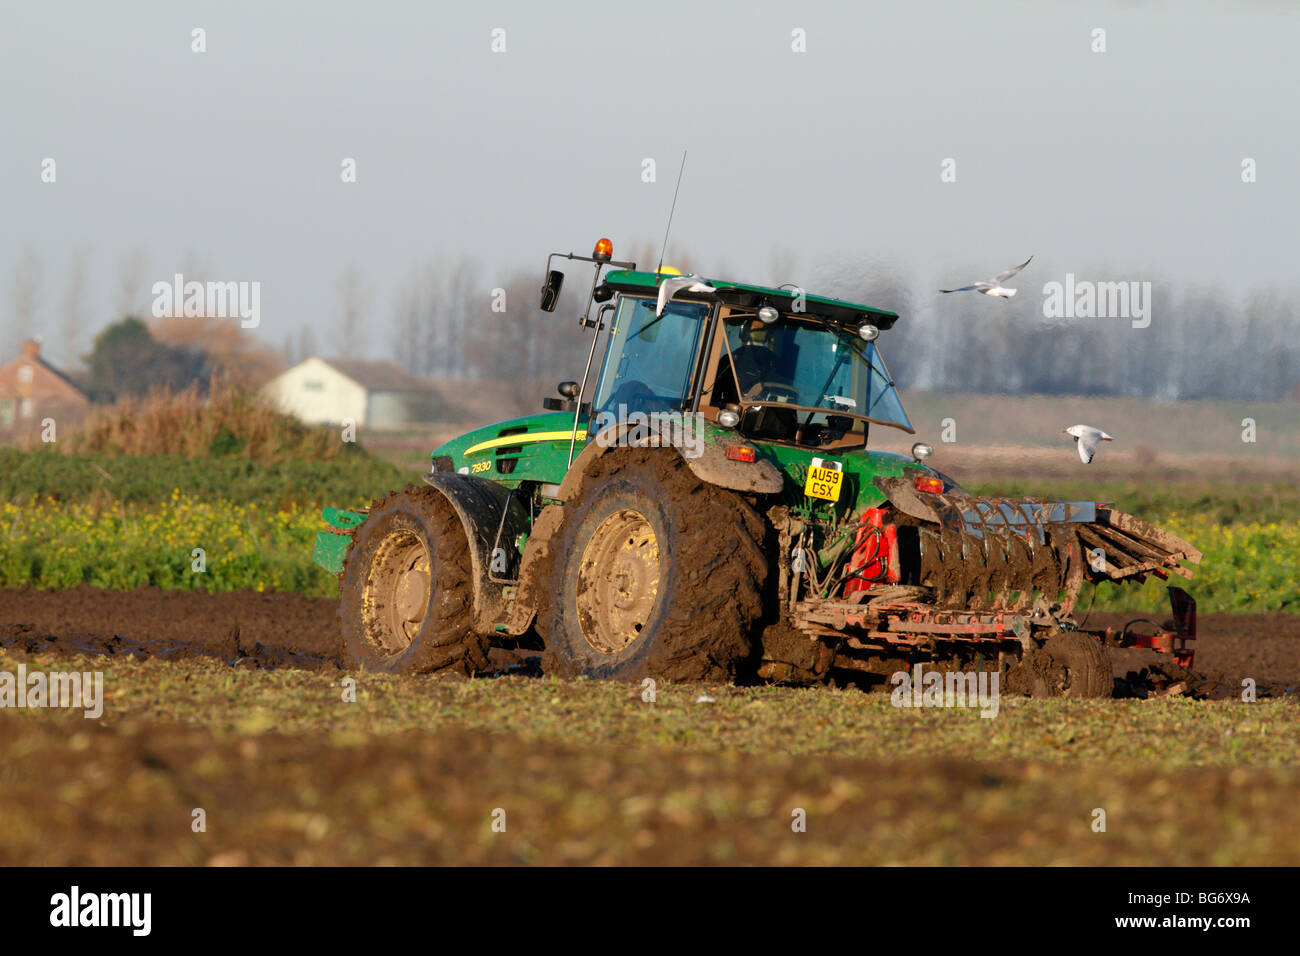 Tractor ploughing with gulls cultivation - Stock Image